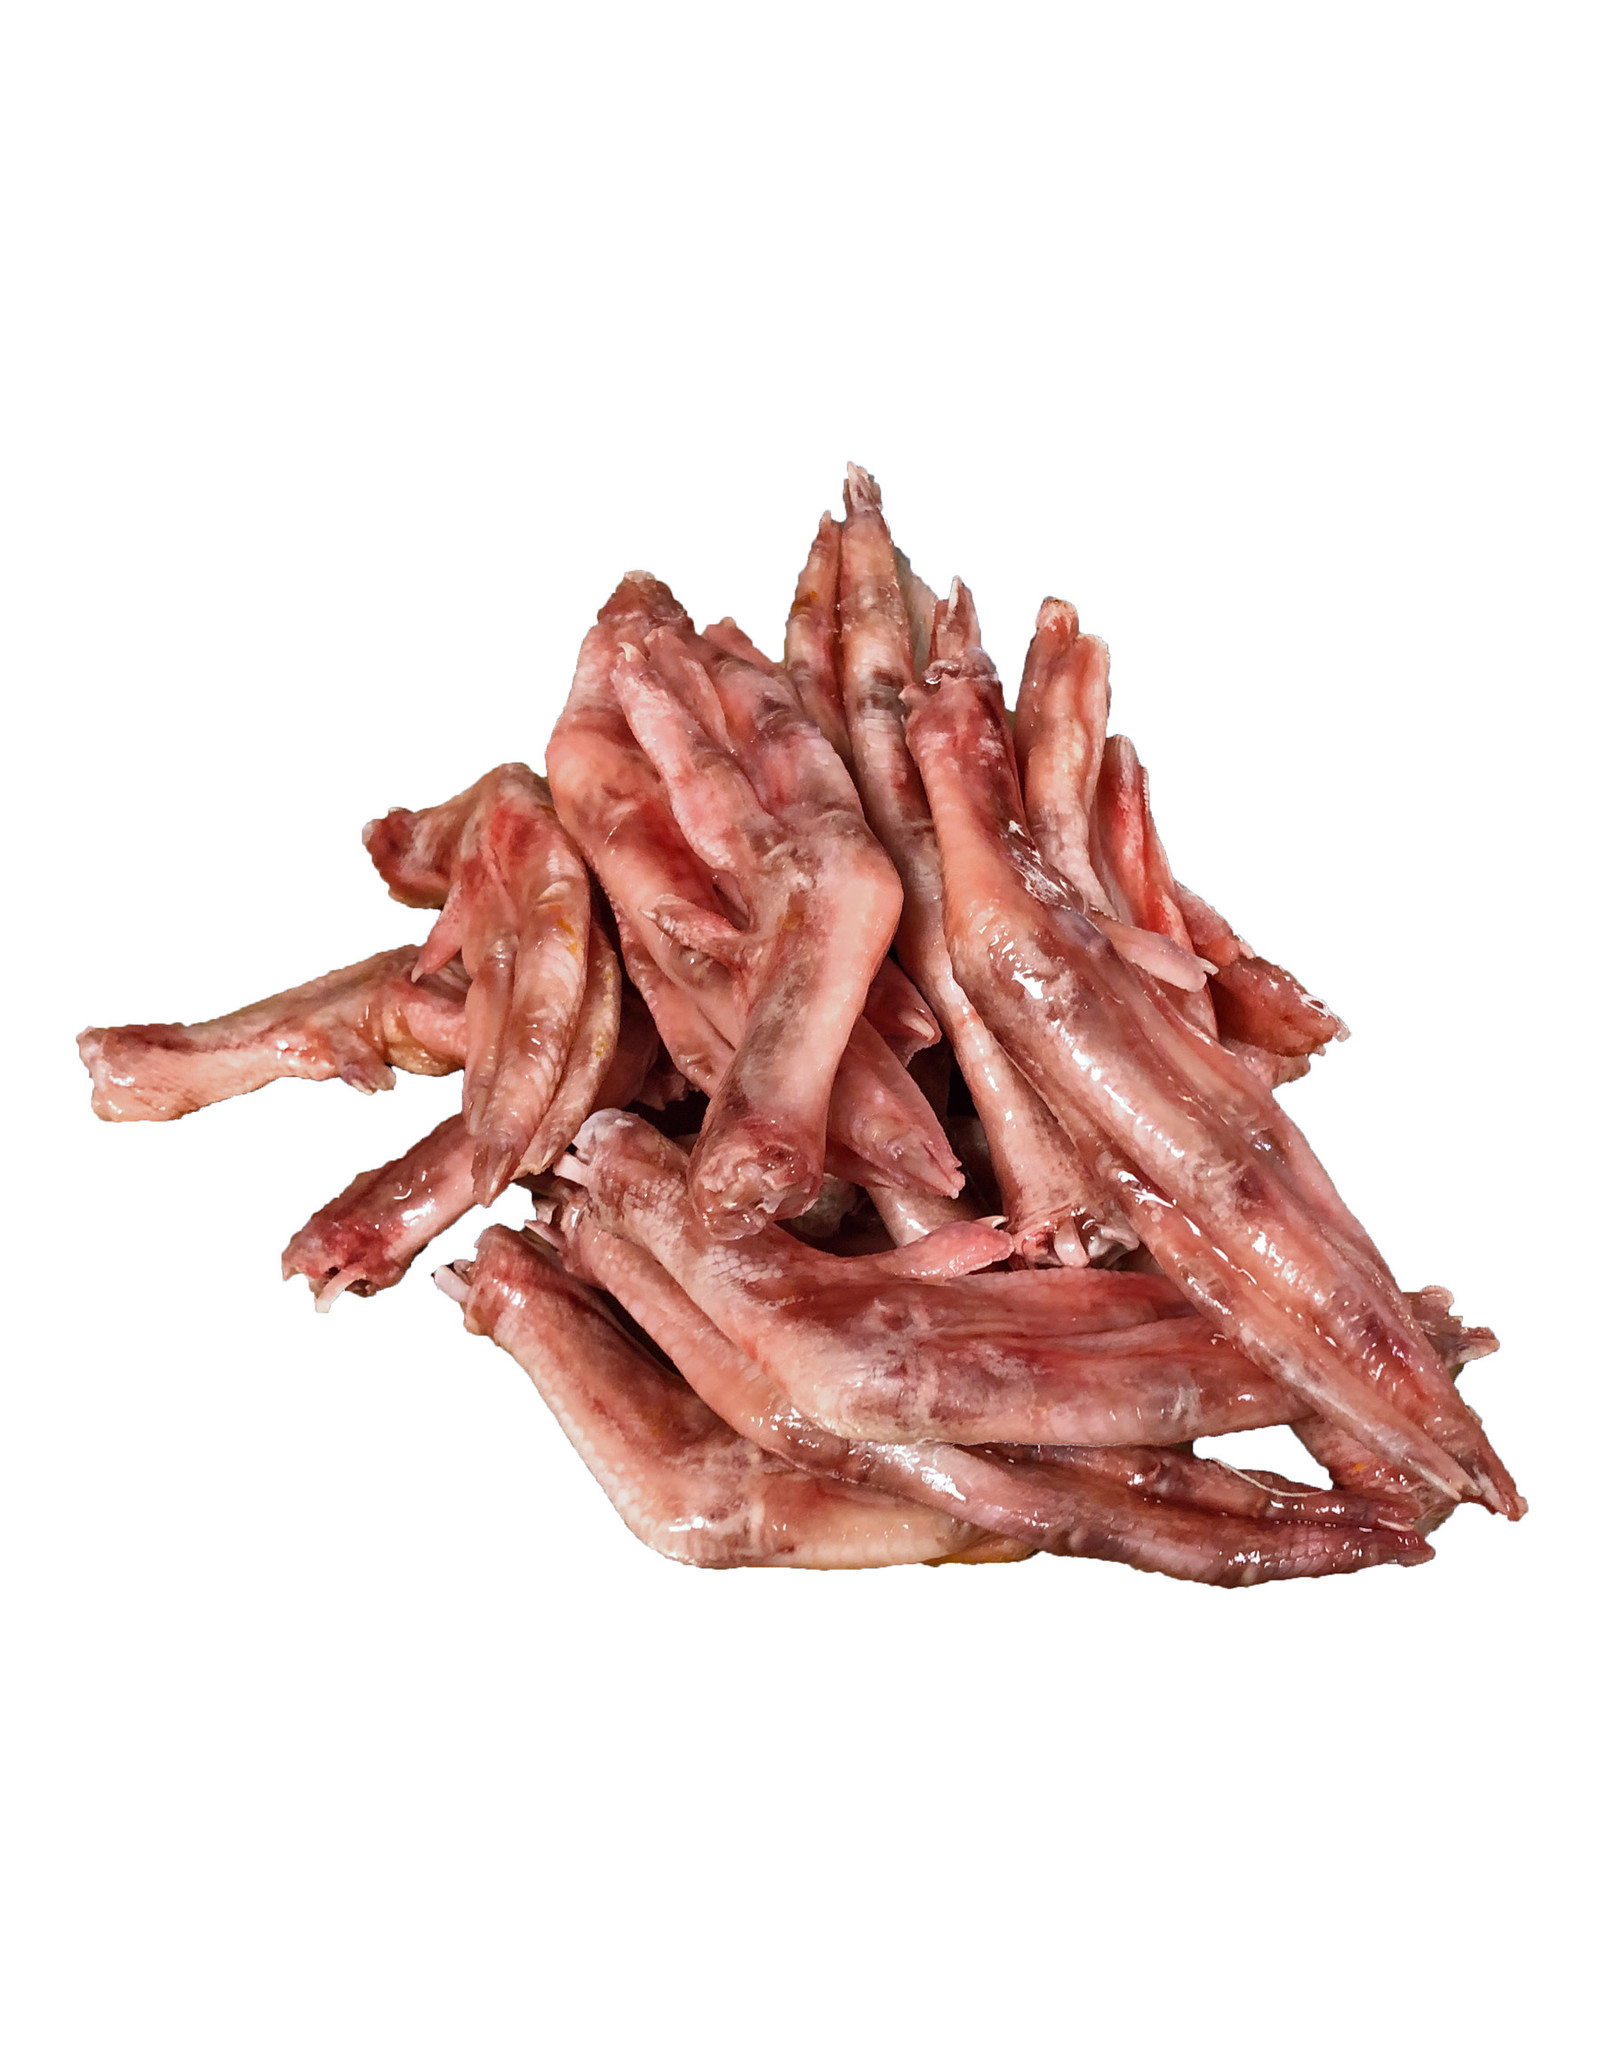 DOMESTIC CARNIVORE DUCK FEET 1LB